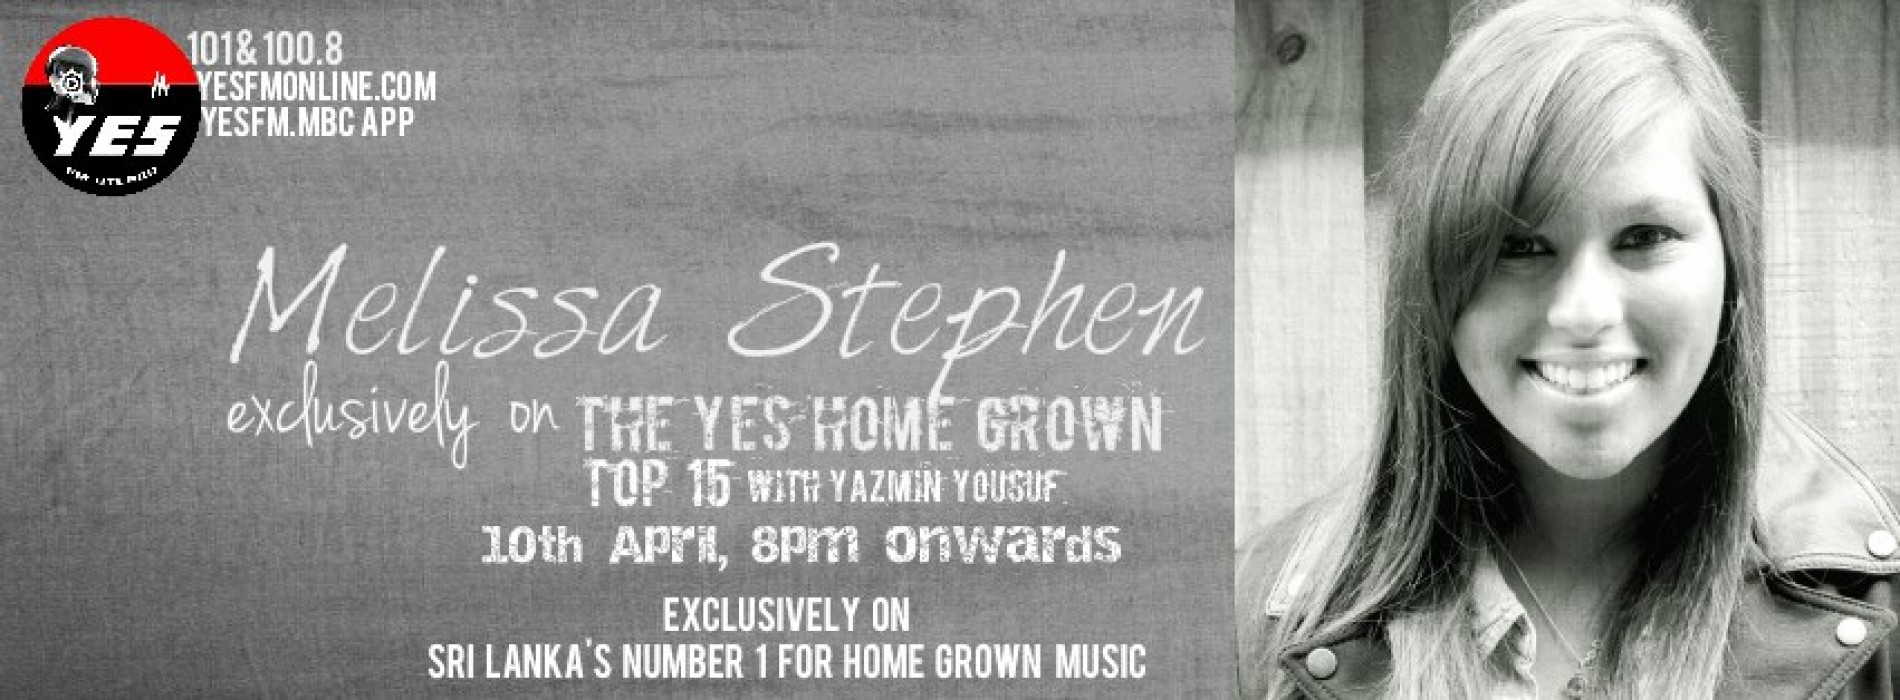 Melissa Stephen On The YES Home Grown Top 15